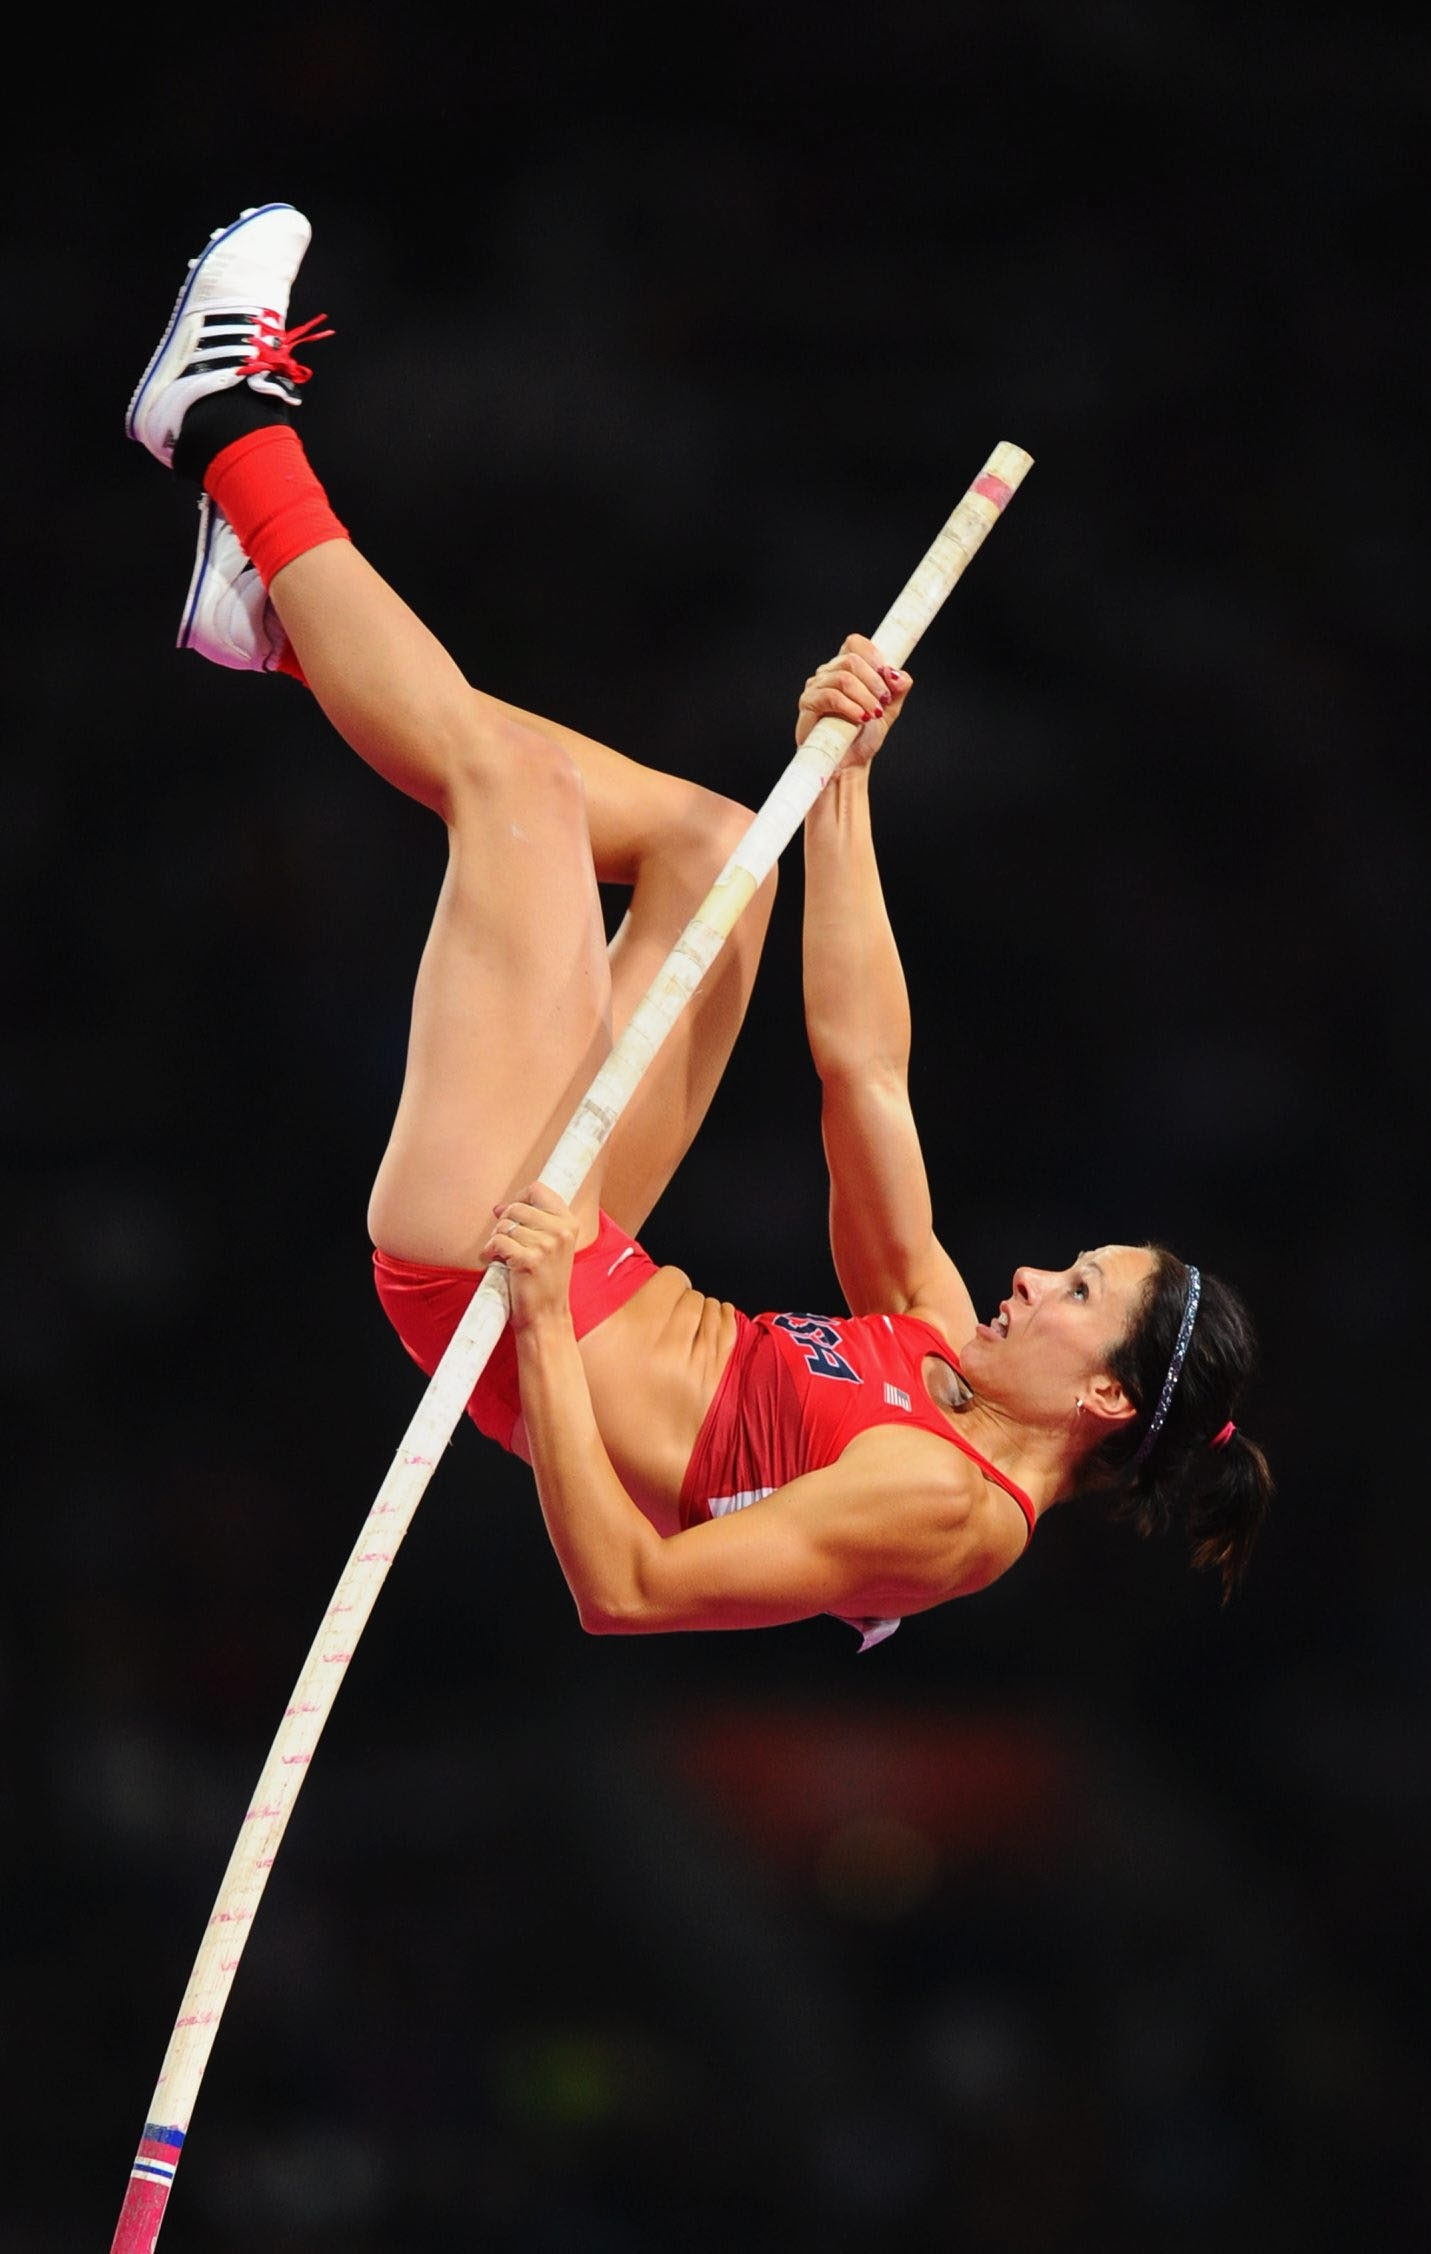 Jenn Suhr competes in the 2012 Games, where she won the gold.